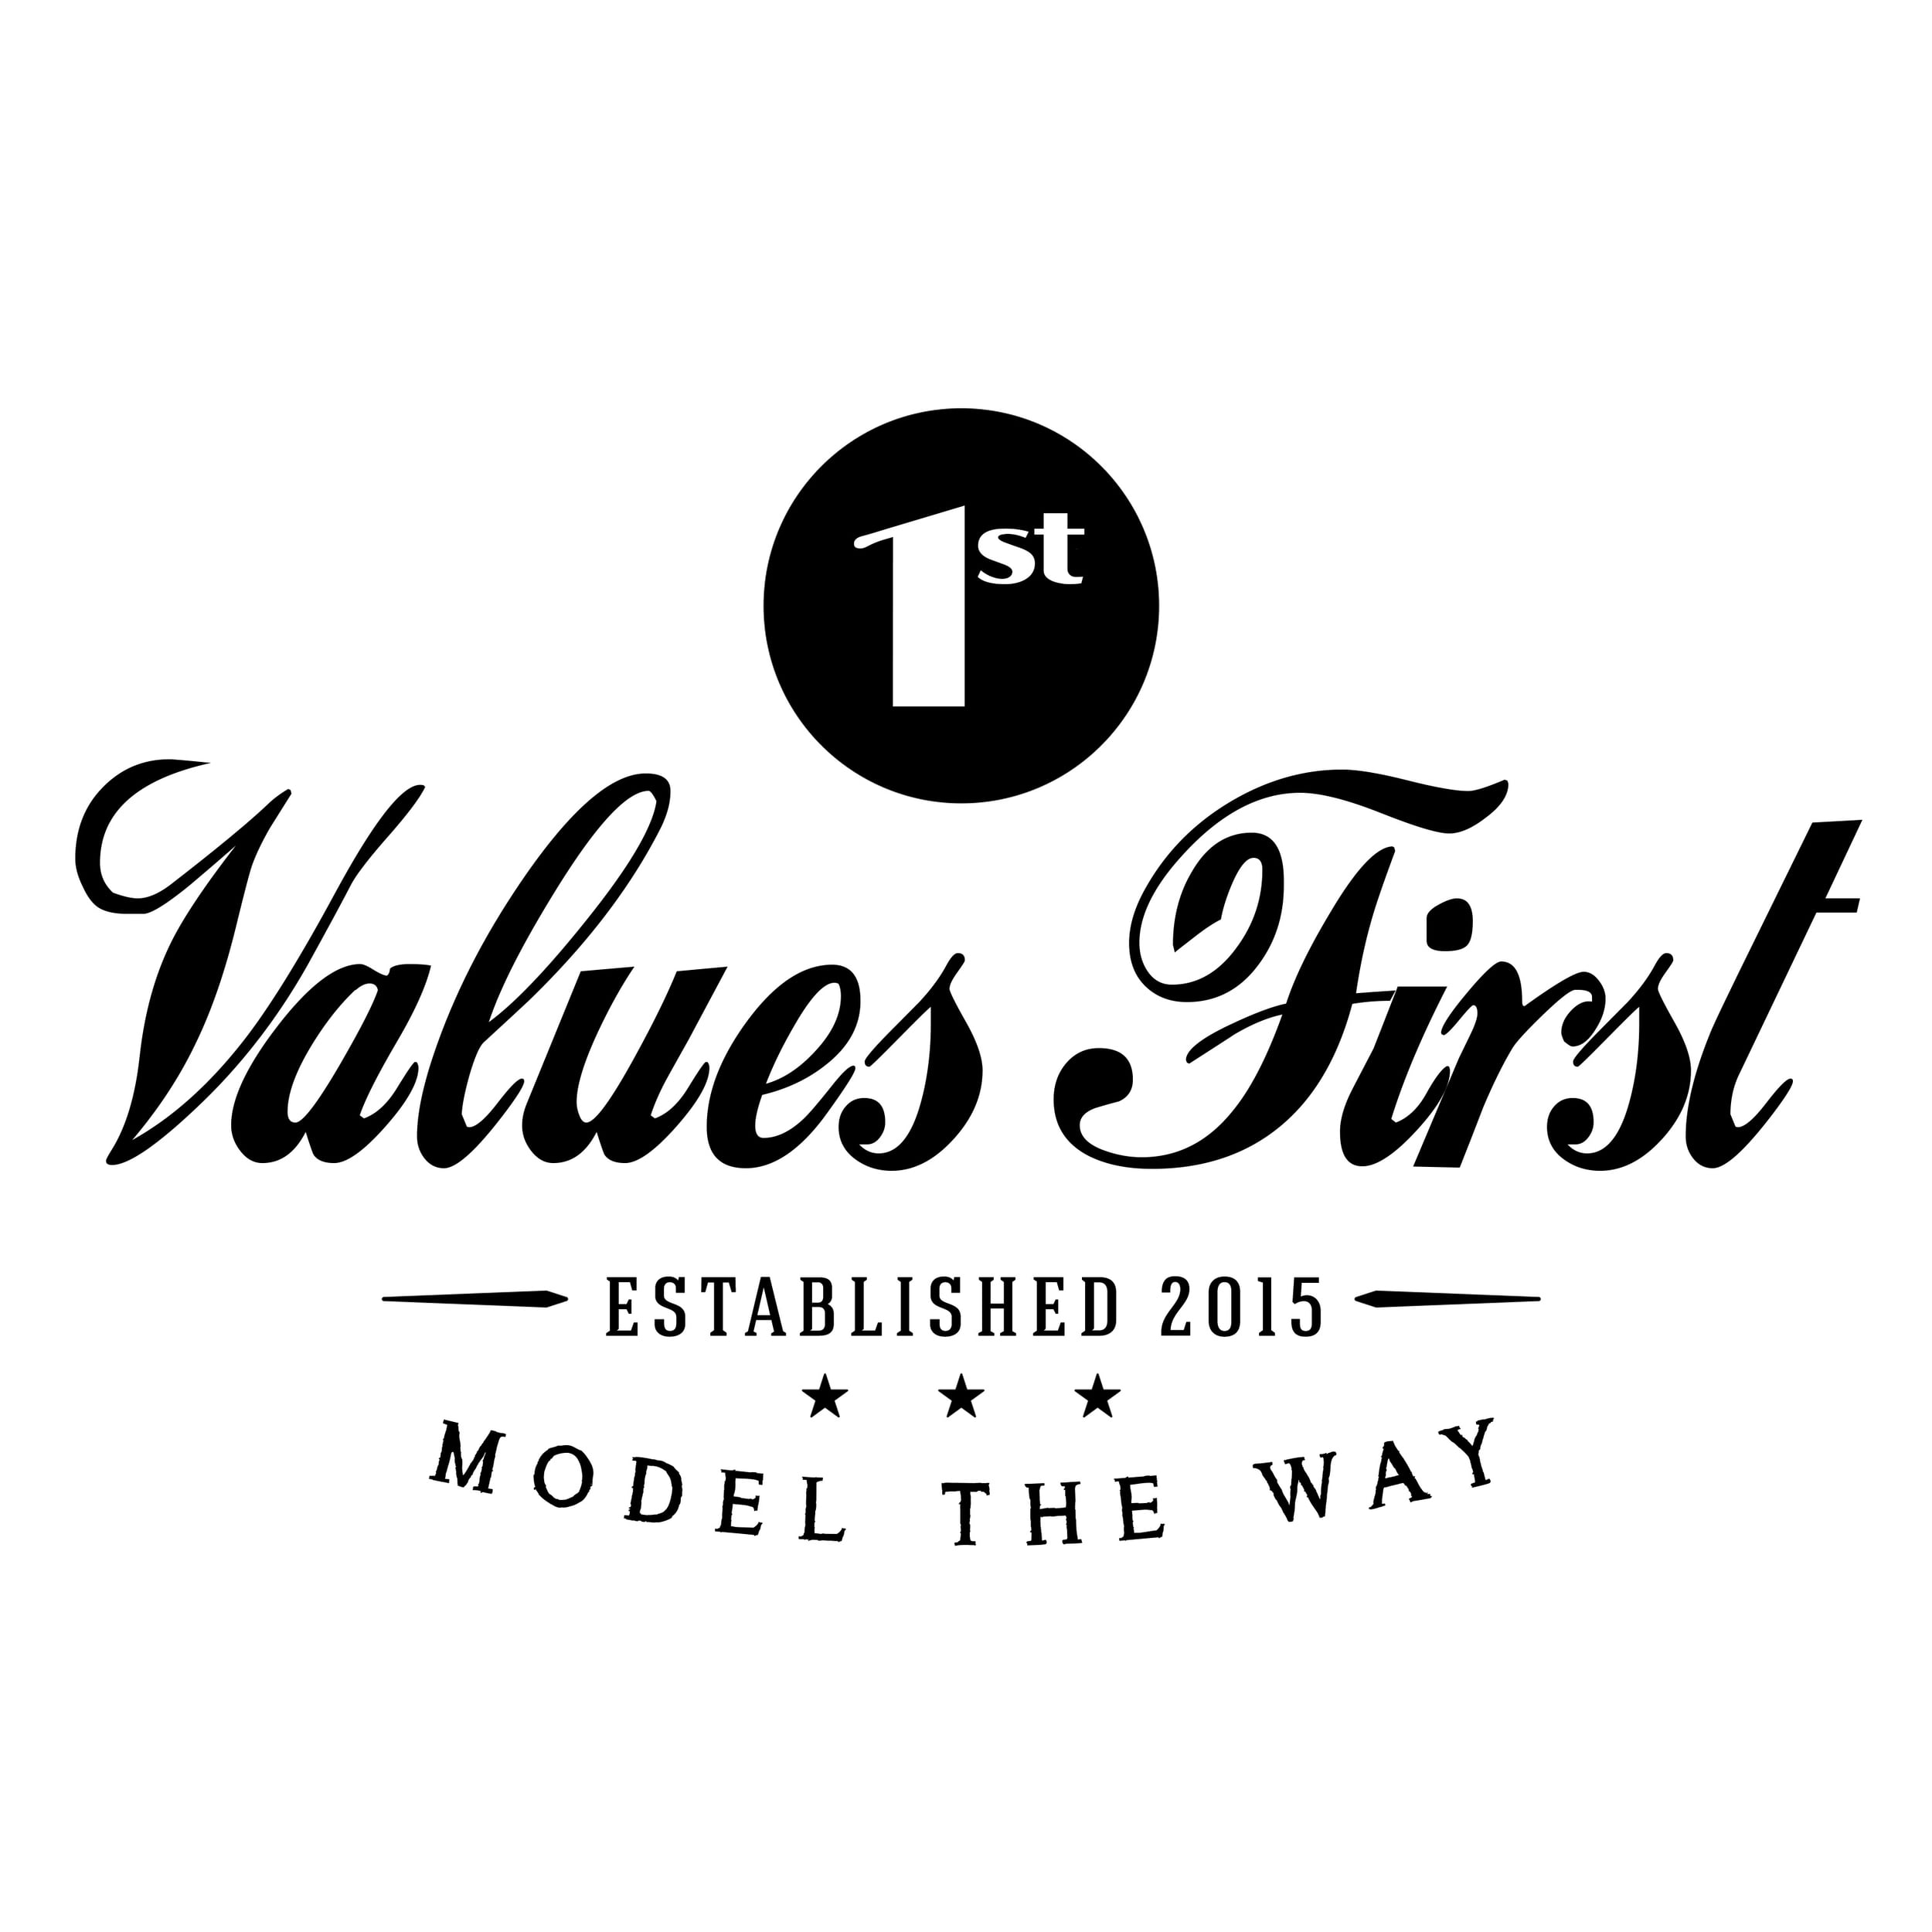 Are you ready to be a Values First member?